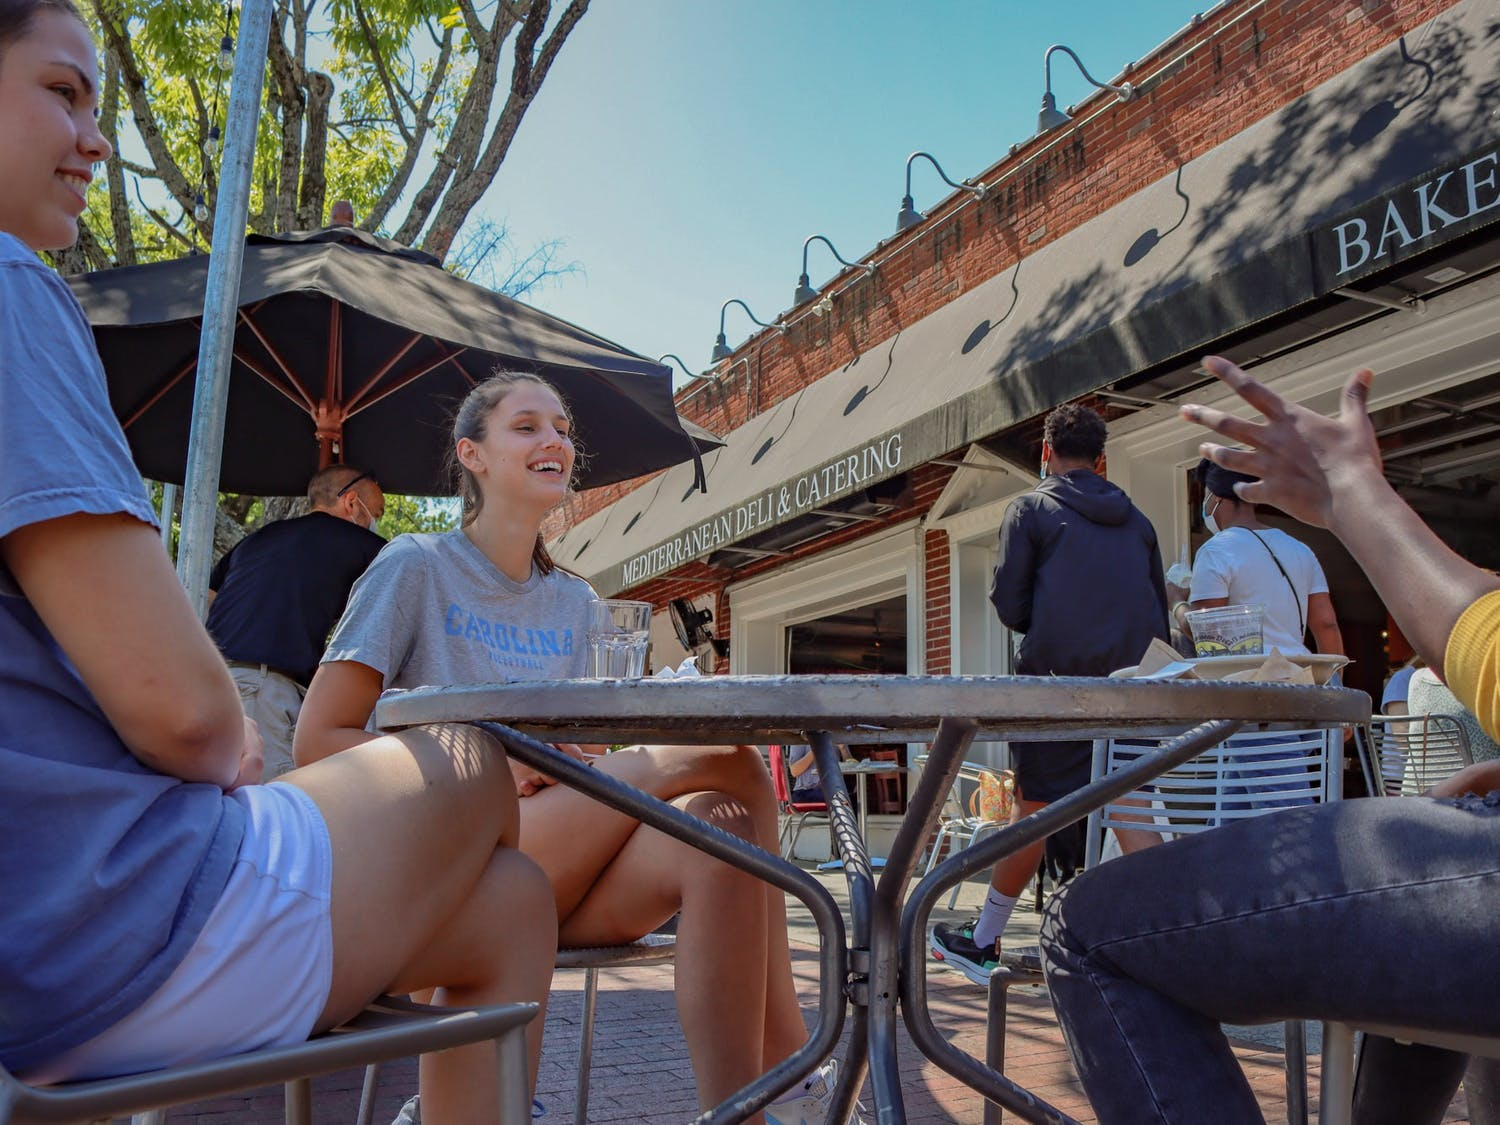 UNC junior Erin Boone, seinor Artistea Tontai, and Isiuwa Oghagbon chat after enjoying an outdoor meal at Mediterranenan Deli on Franklin Street on Monday, April 26.